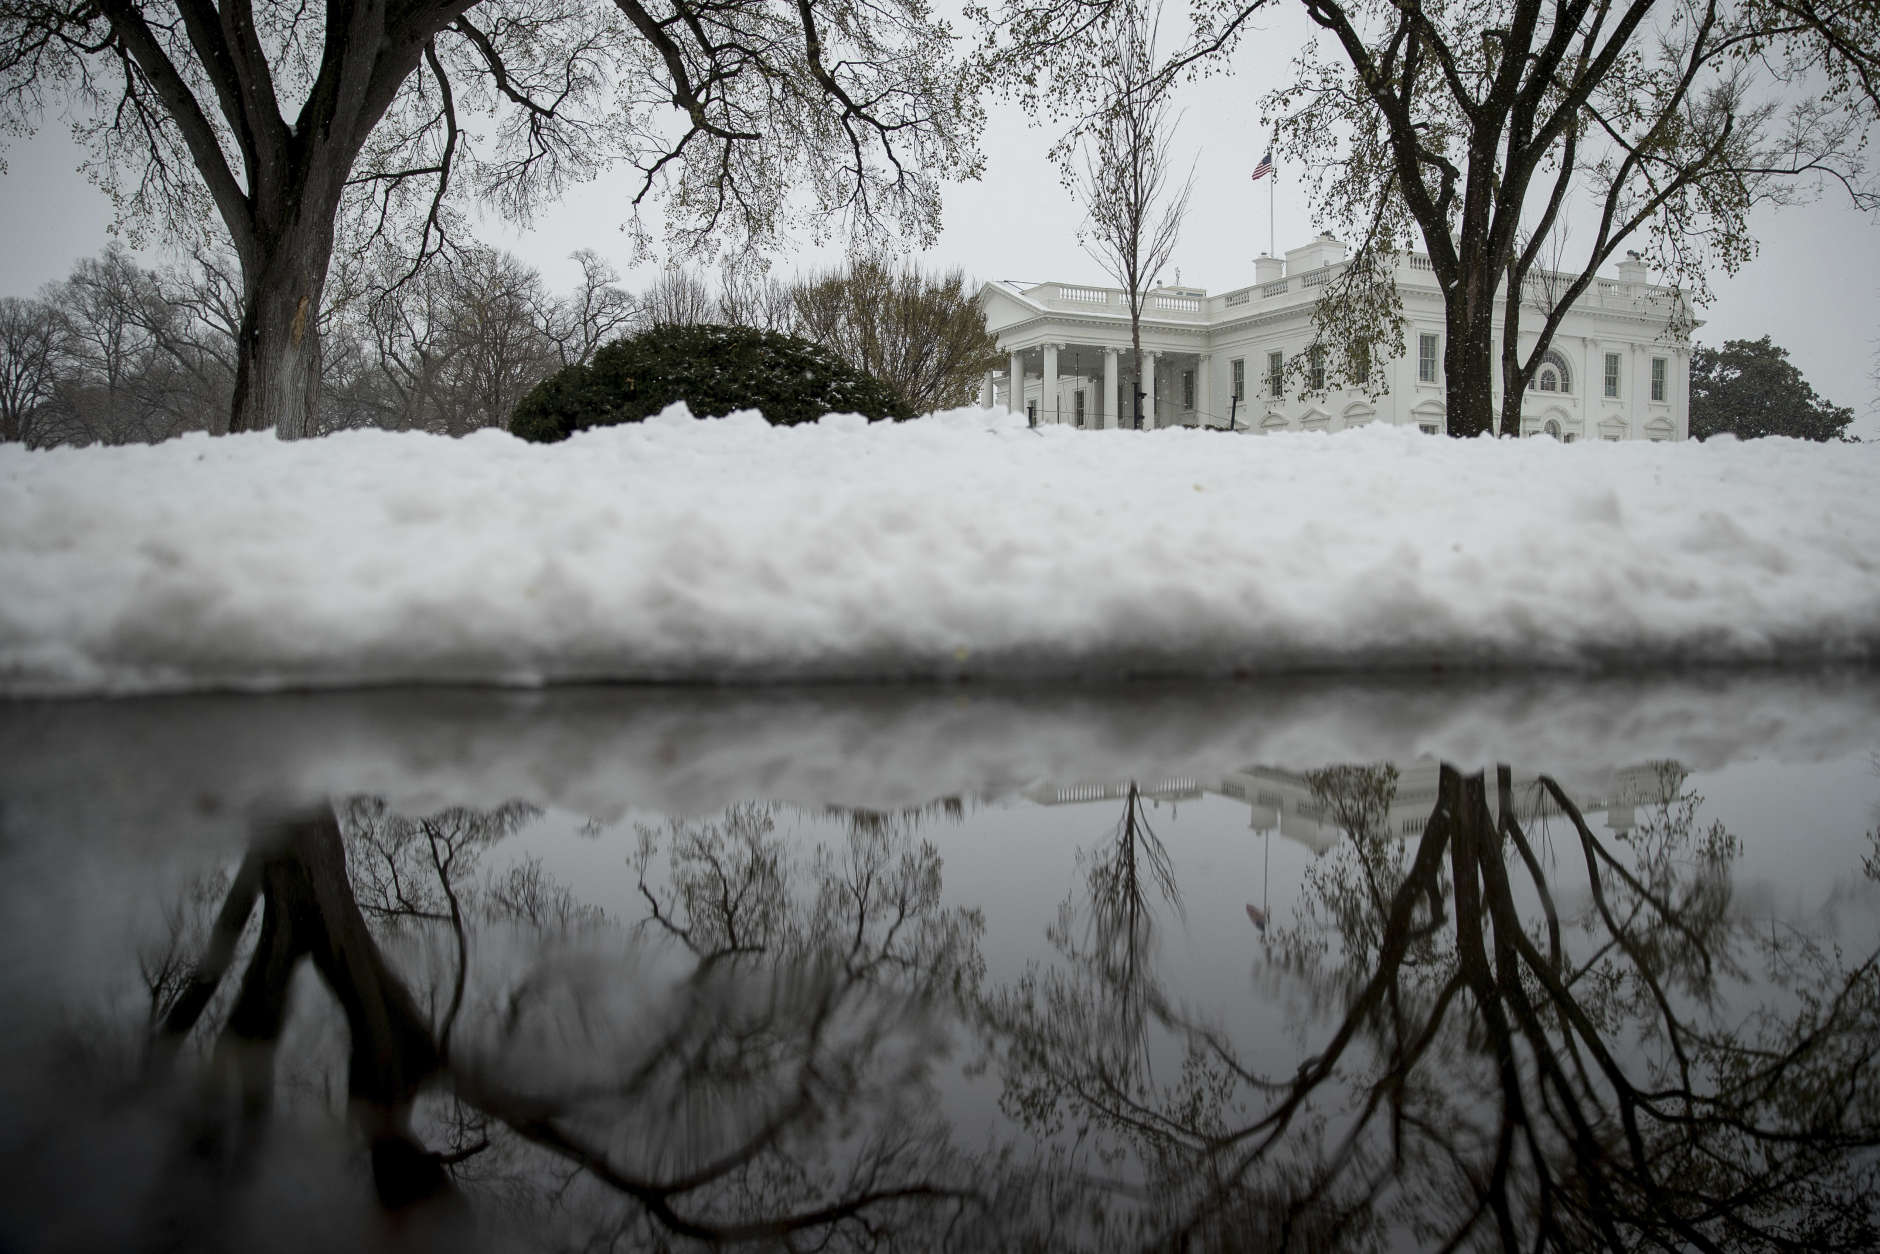 Snow falls outside the White House, Tuesday, March 14, 2017, in Washington. (AP Photo/Andrew Harnik)